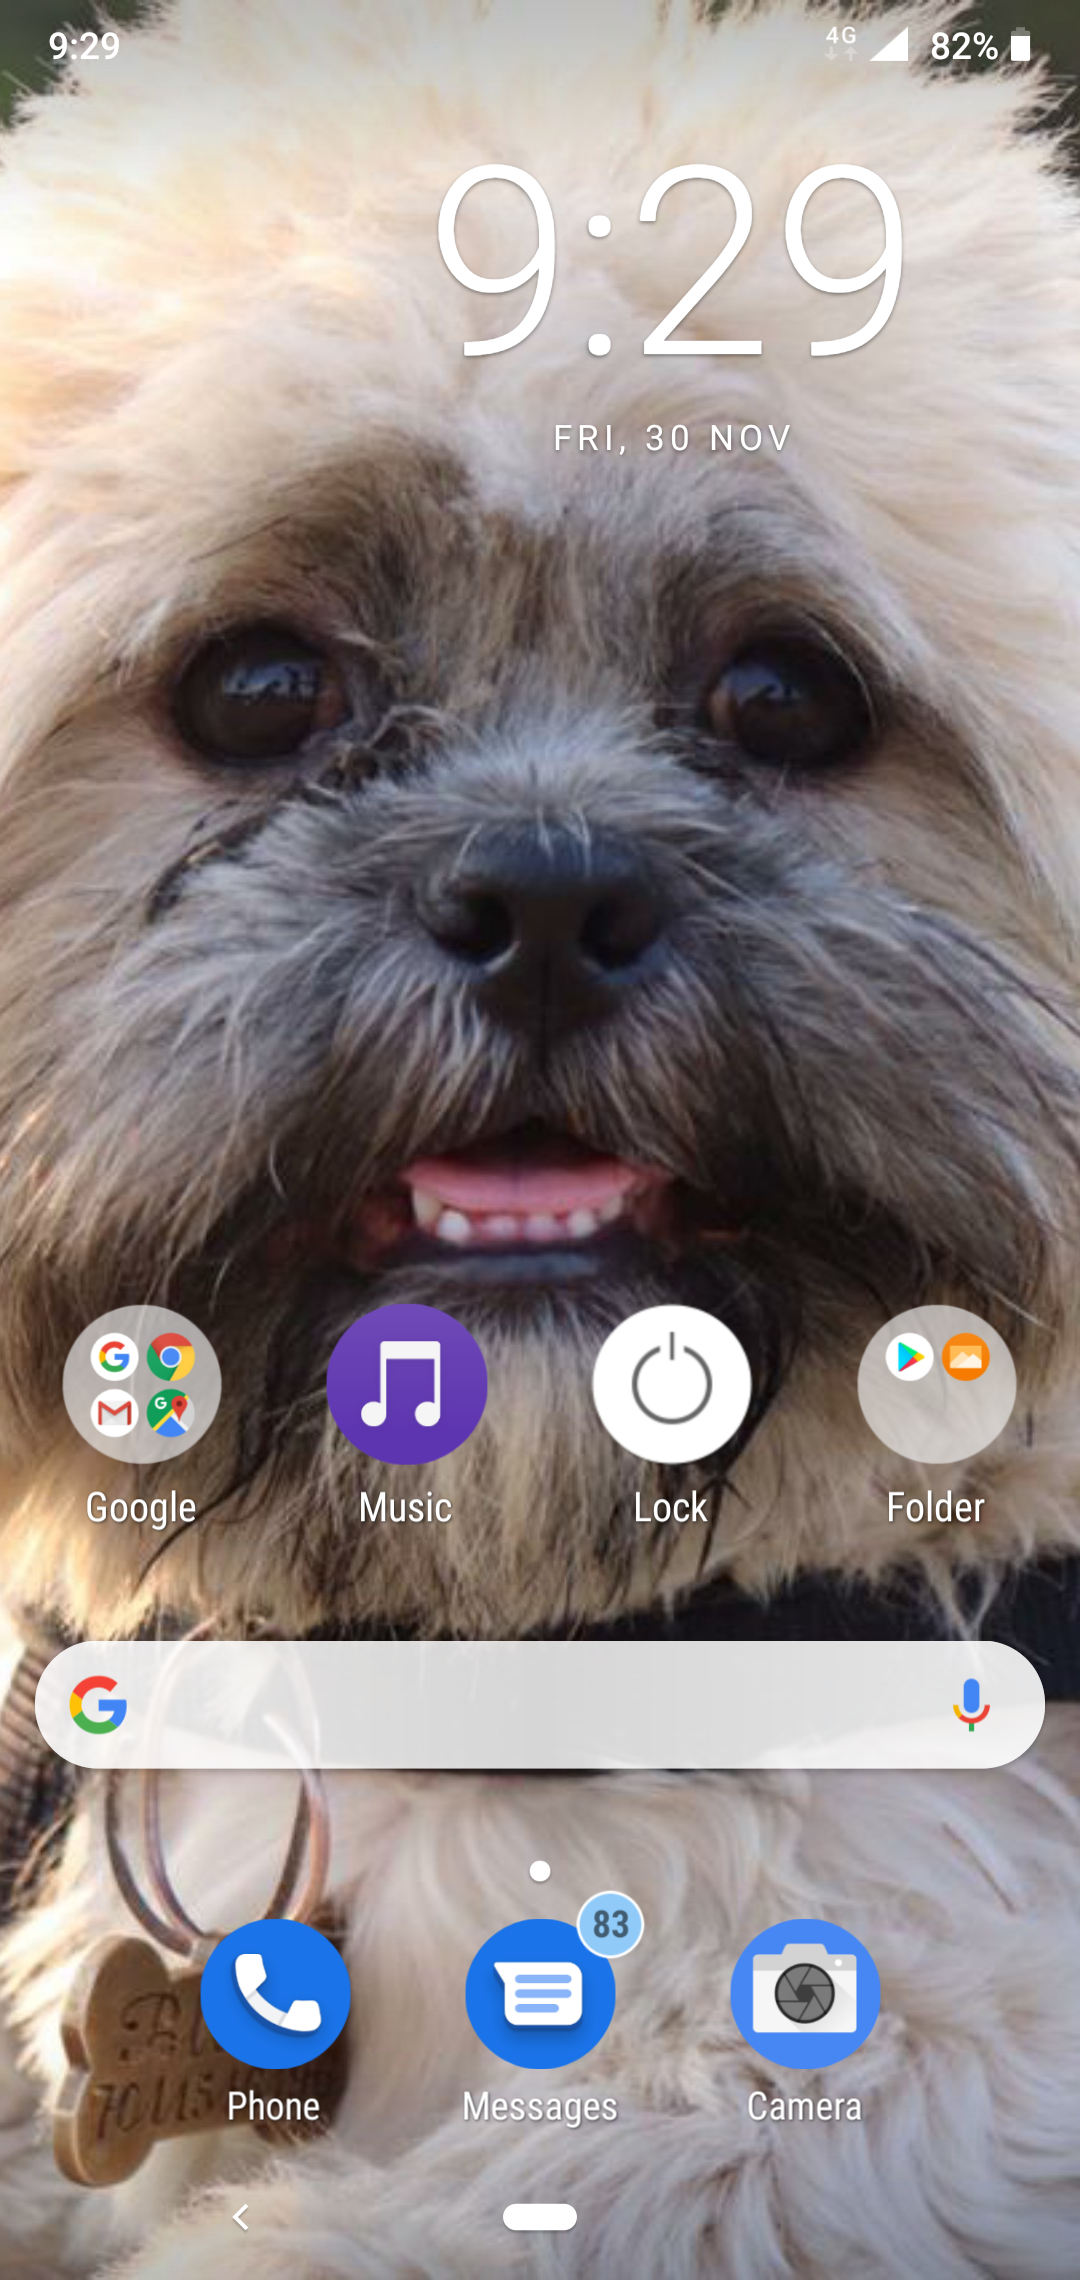 Share Your screen - Volume 1 - Page 11 — Nokia phones community